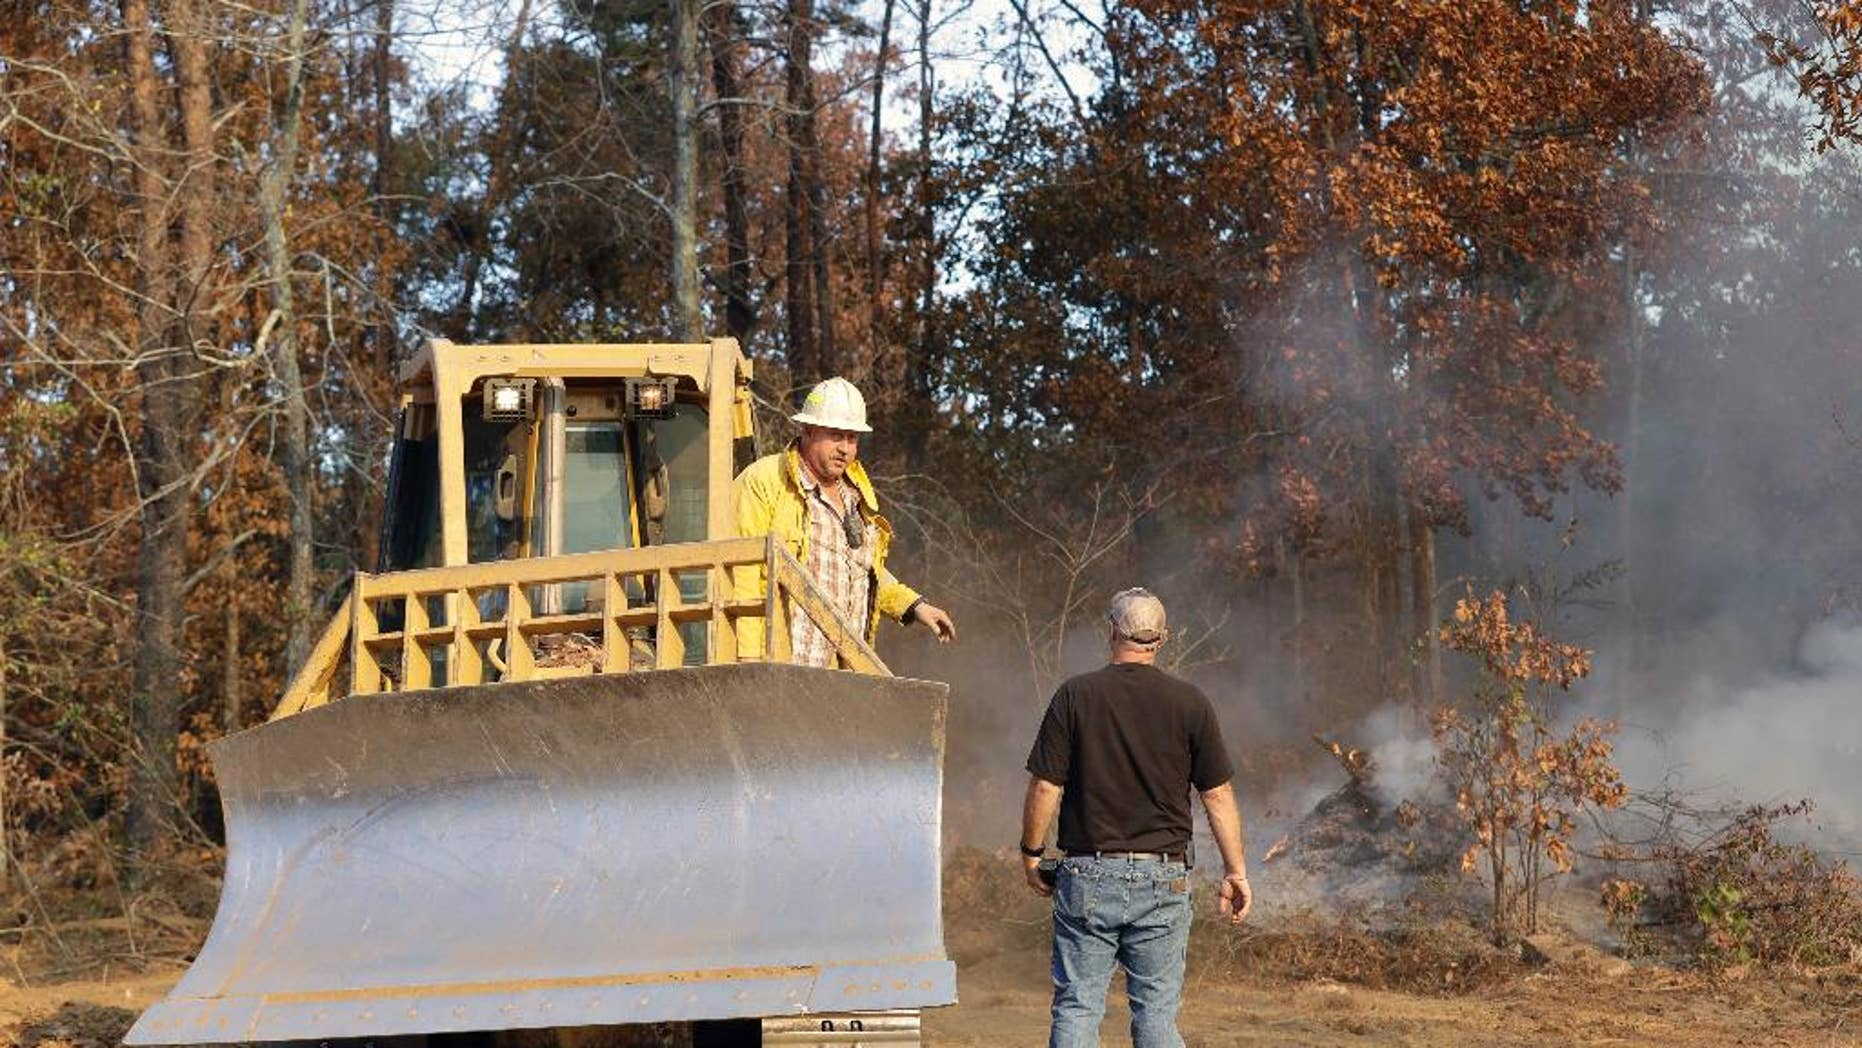 Bulldozer operator Jody McDonald, left, talks with Assistant Chief Dusten Woodard, right, of the Mowbray Volunteer Fire Depart, as McDonald cuts a firebreak to fight a wildfire Thursday, Nov. 10, 2016, in Soddy-Daisy, Tenn. Federal authorities say warmer-than-average temperatures and no rainfall are deepening a drought that's sparking forest fires across the Southeastern U.S. (AP Photo/Mark Humphrey)